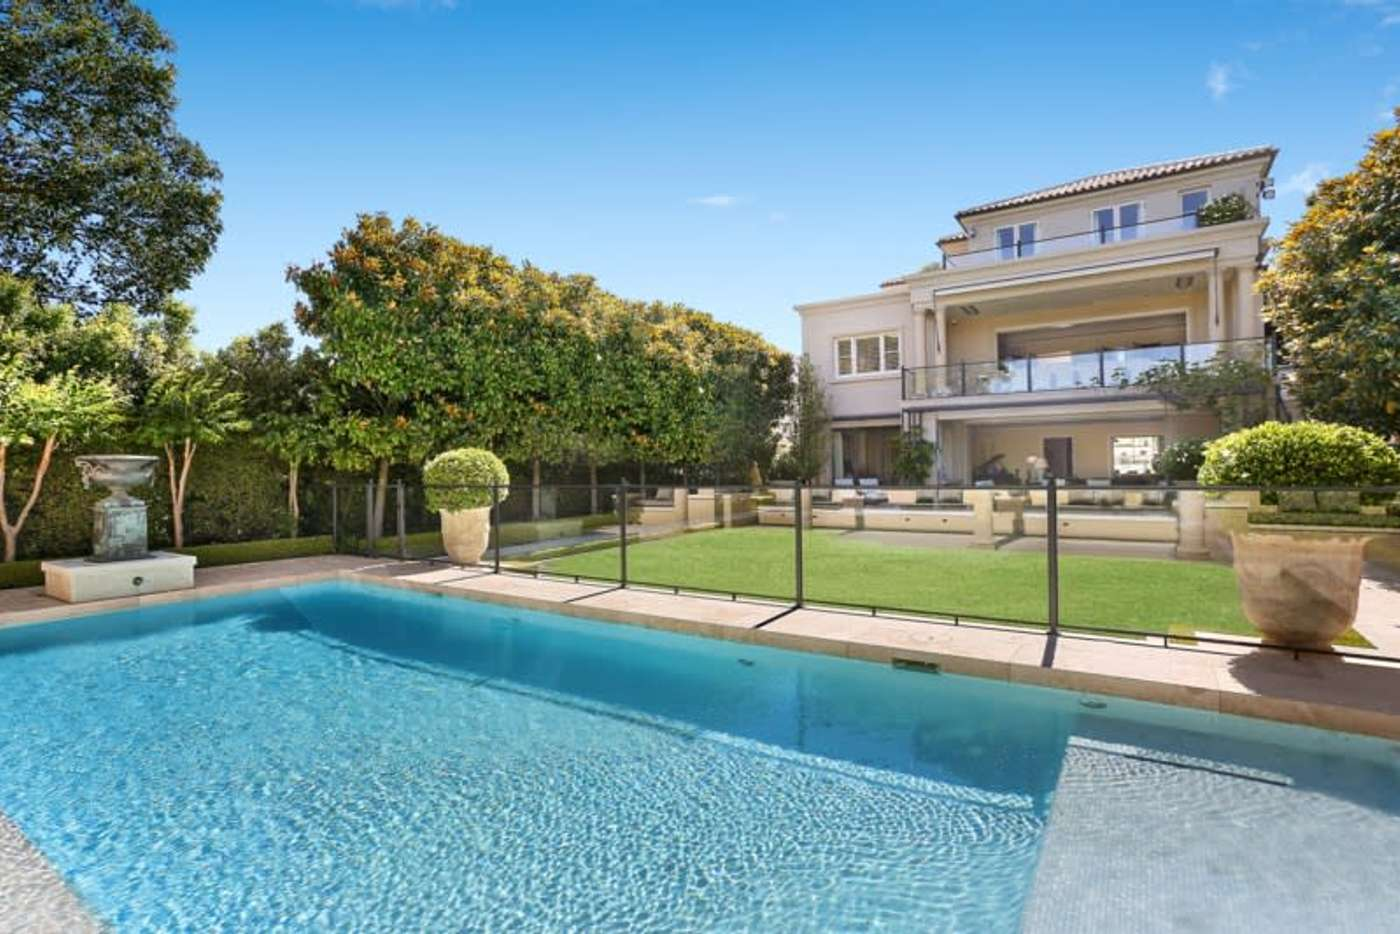 Main view of Homely house listing, 9 Black Street, Vaucluse NSW 2030